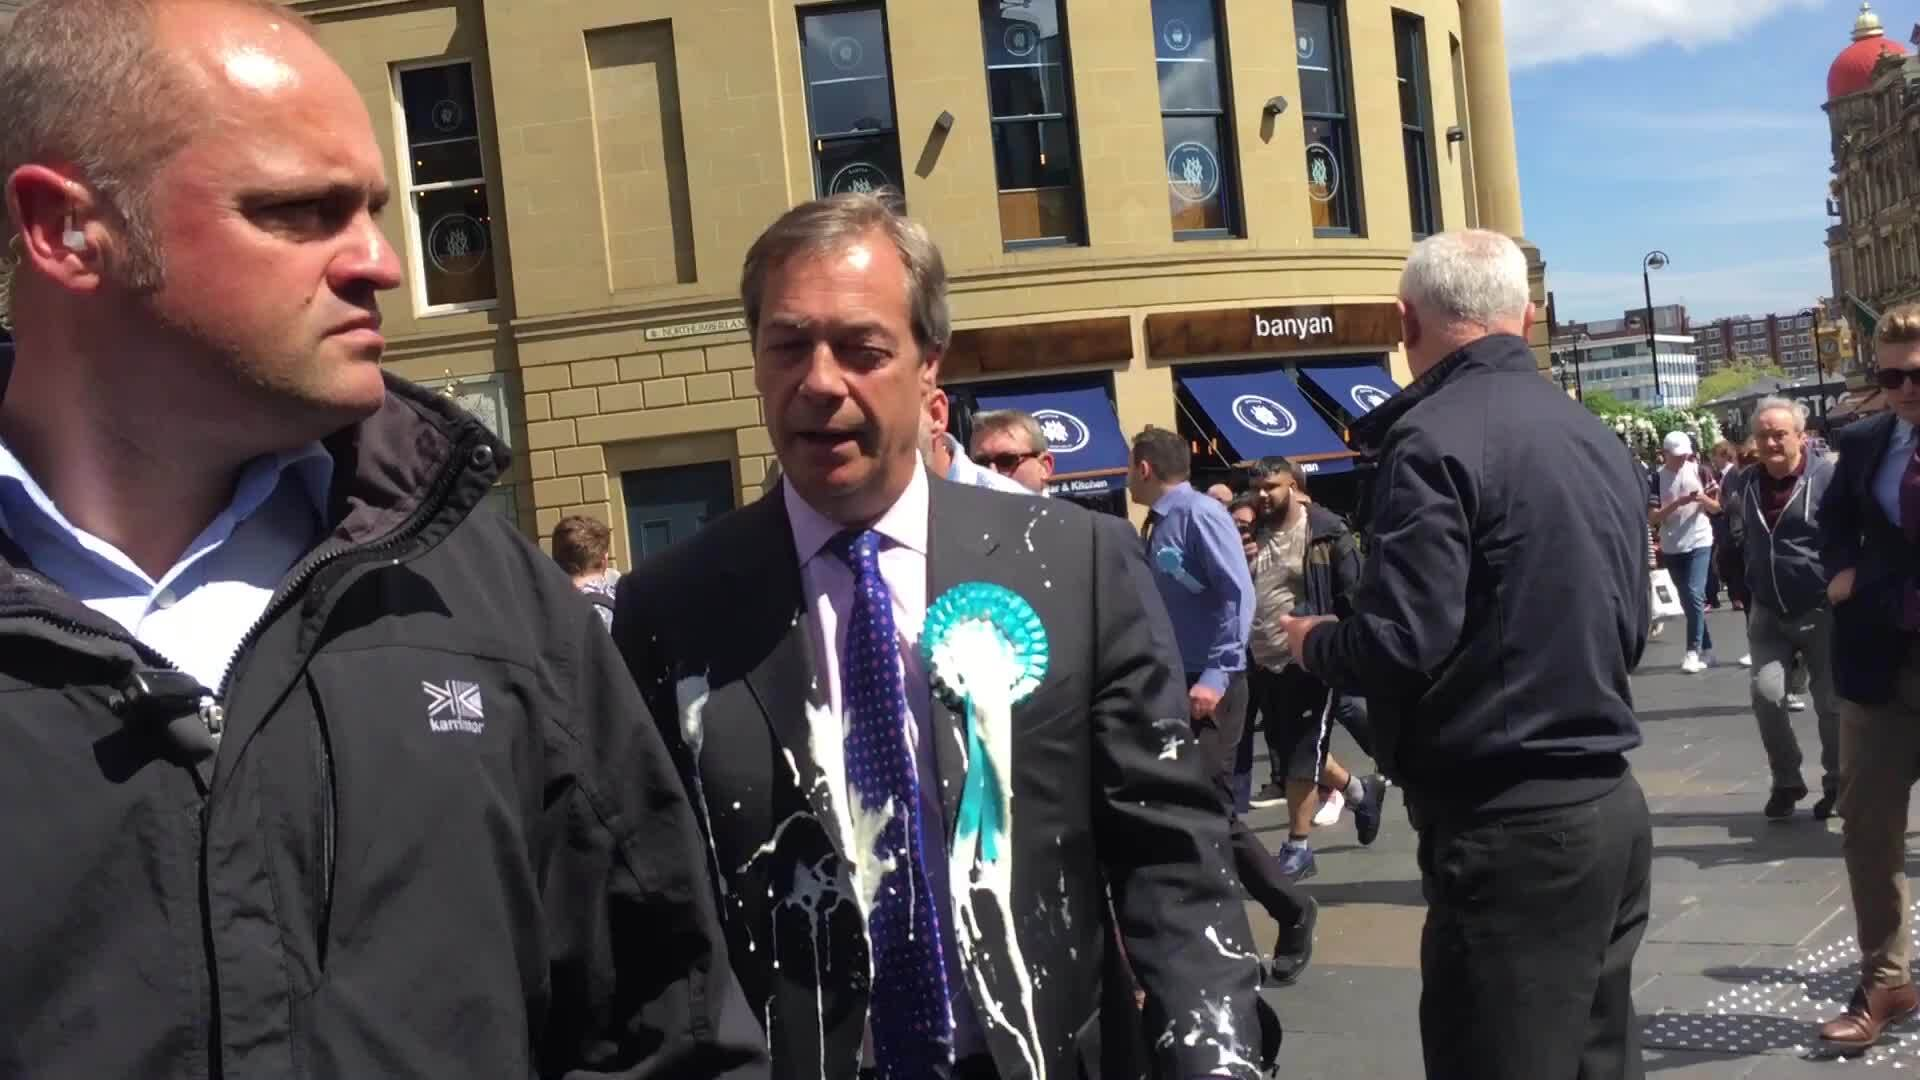 Nigel Farage hit by milkshake while campaigning for European elections in Newcastle